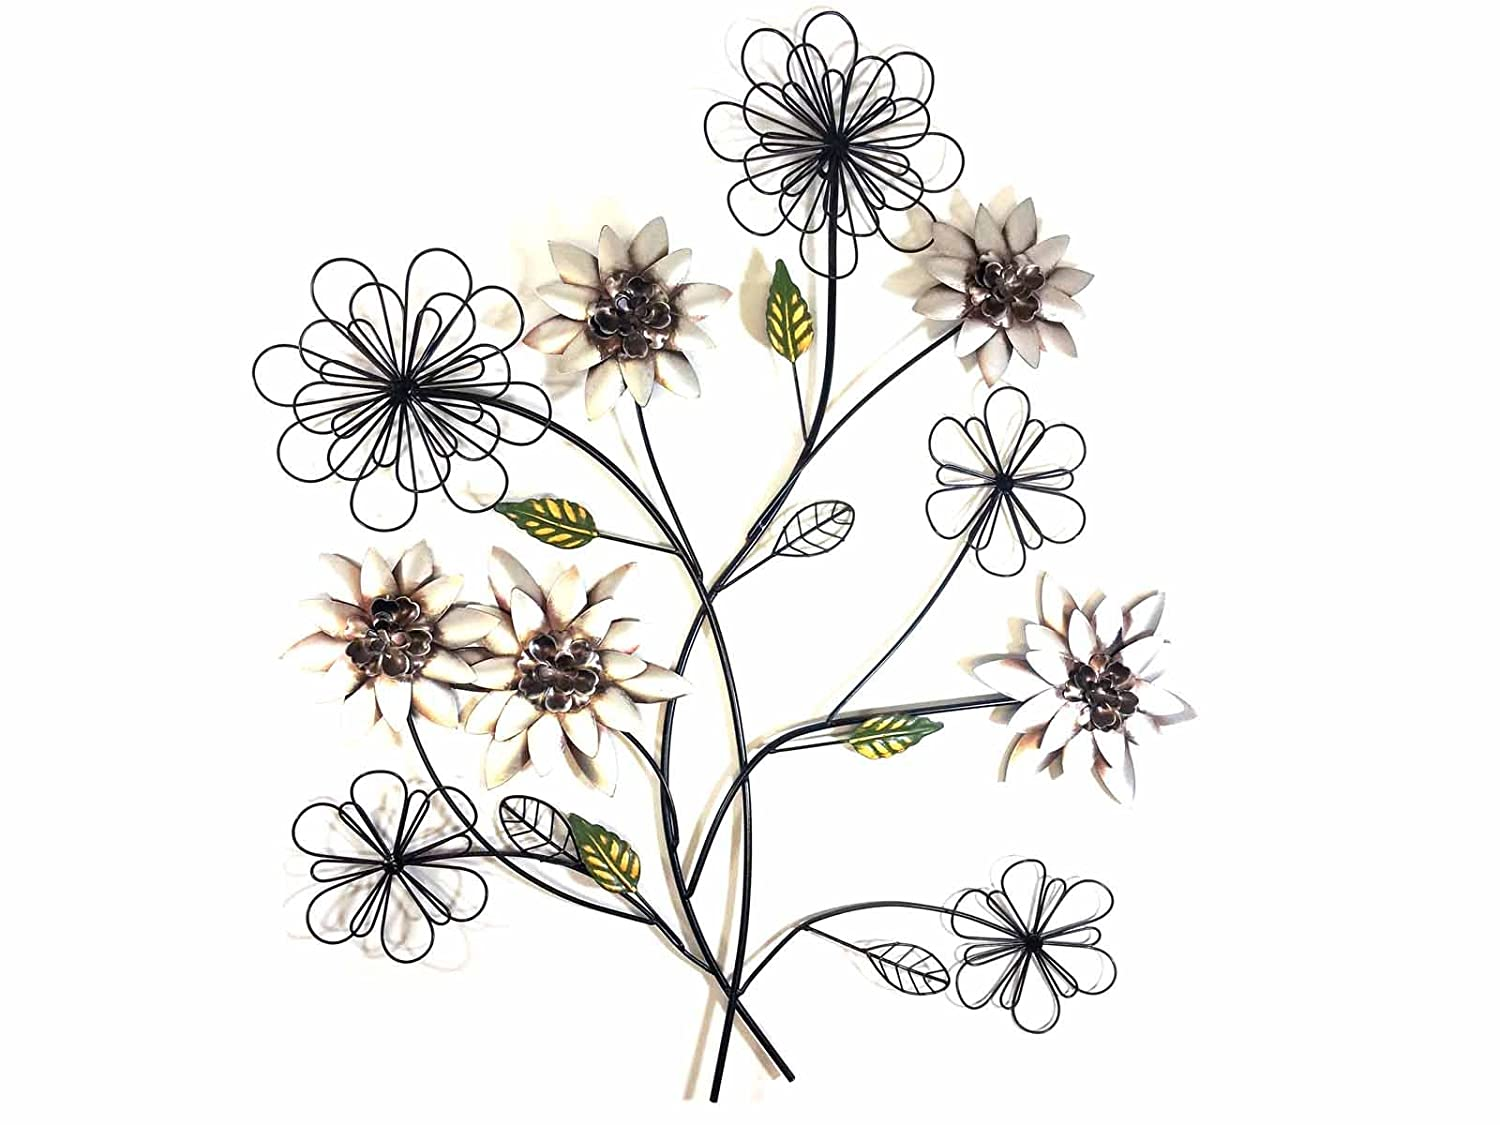 New - Contemporary Metal Wall Art Decor Sculpture - Rustic Silver Flower Bunch SK Style